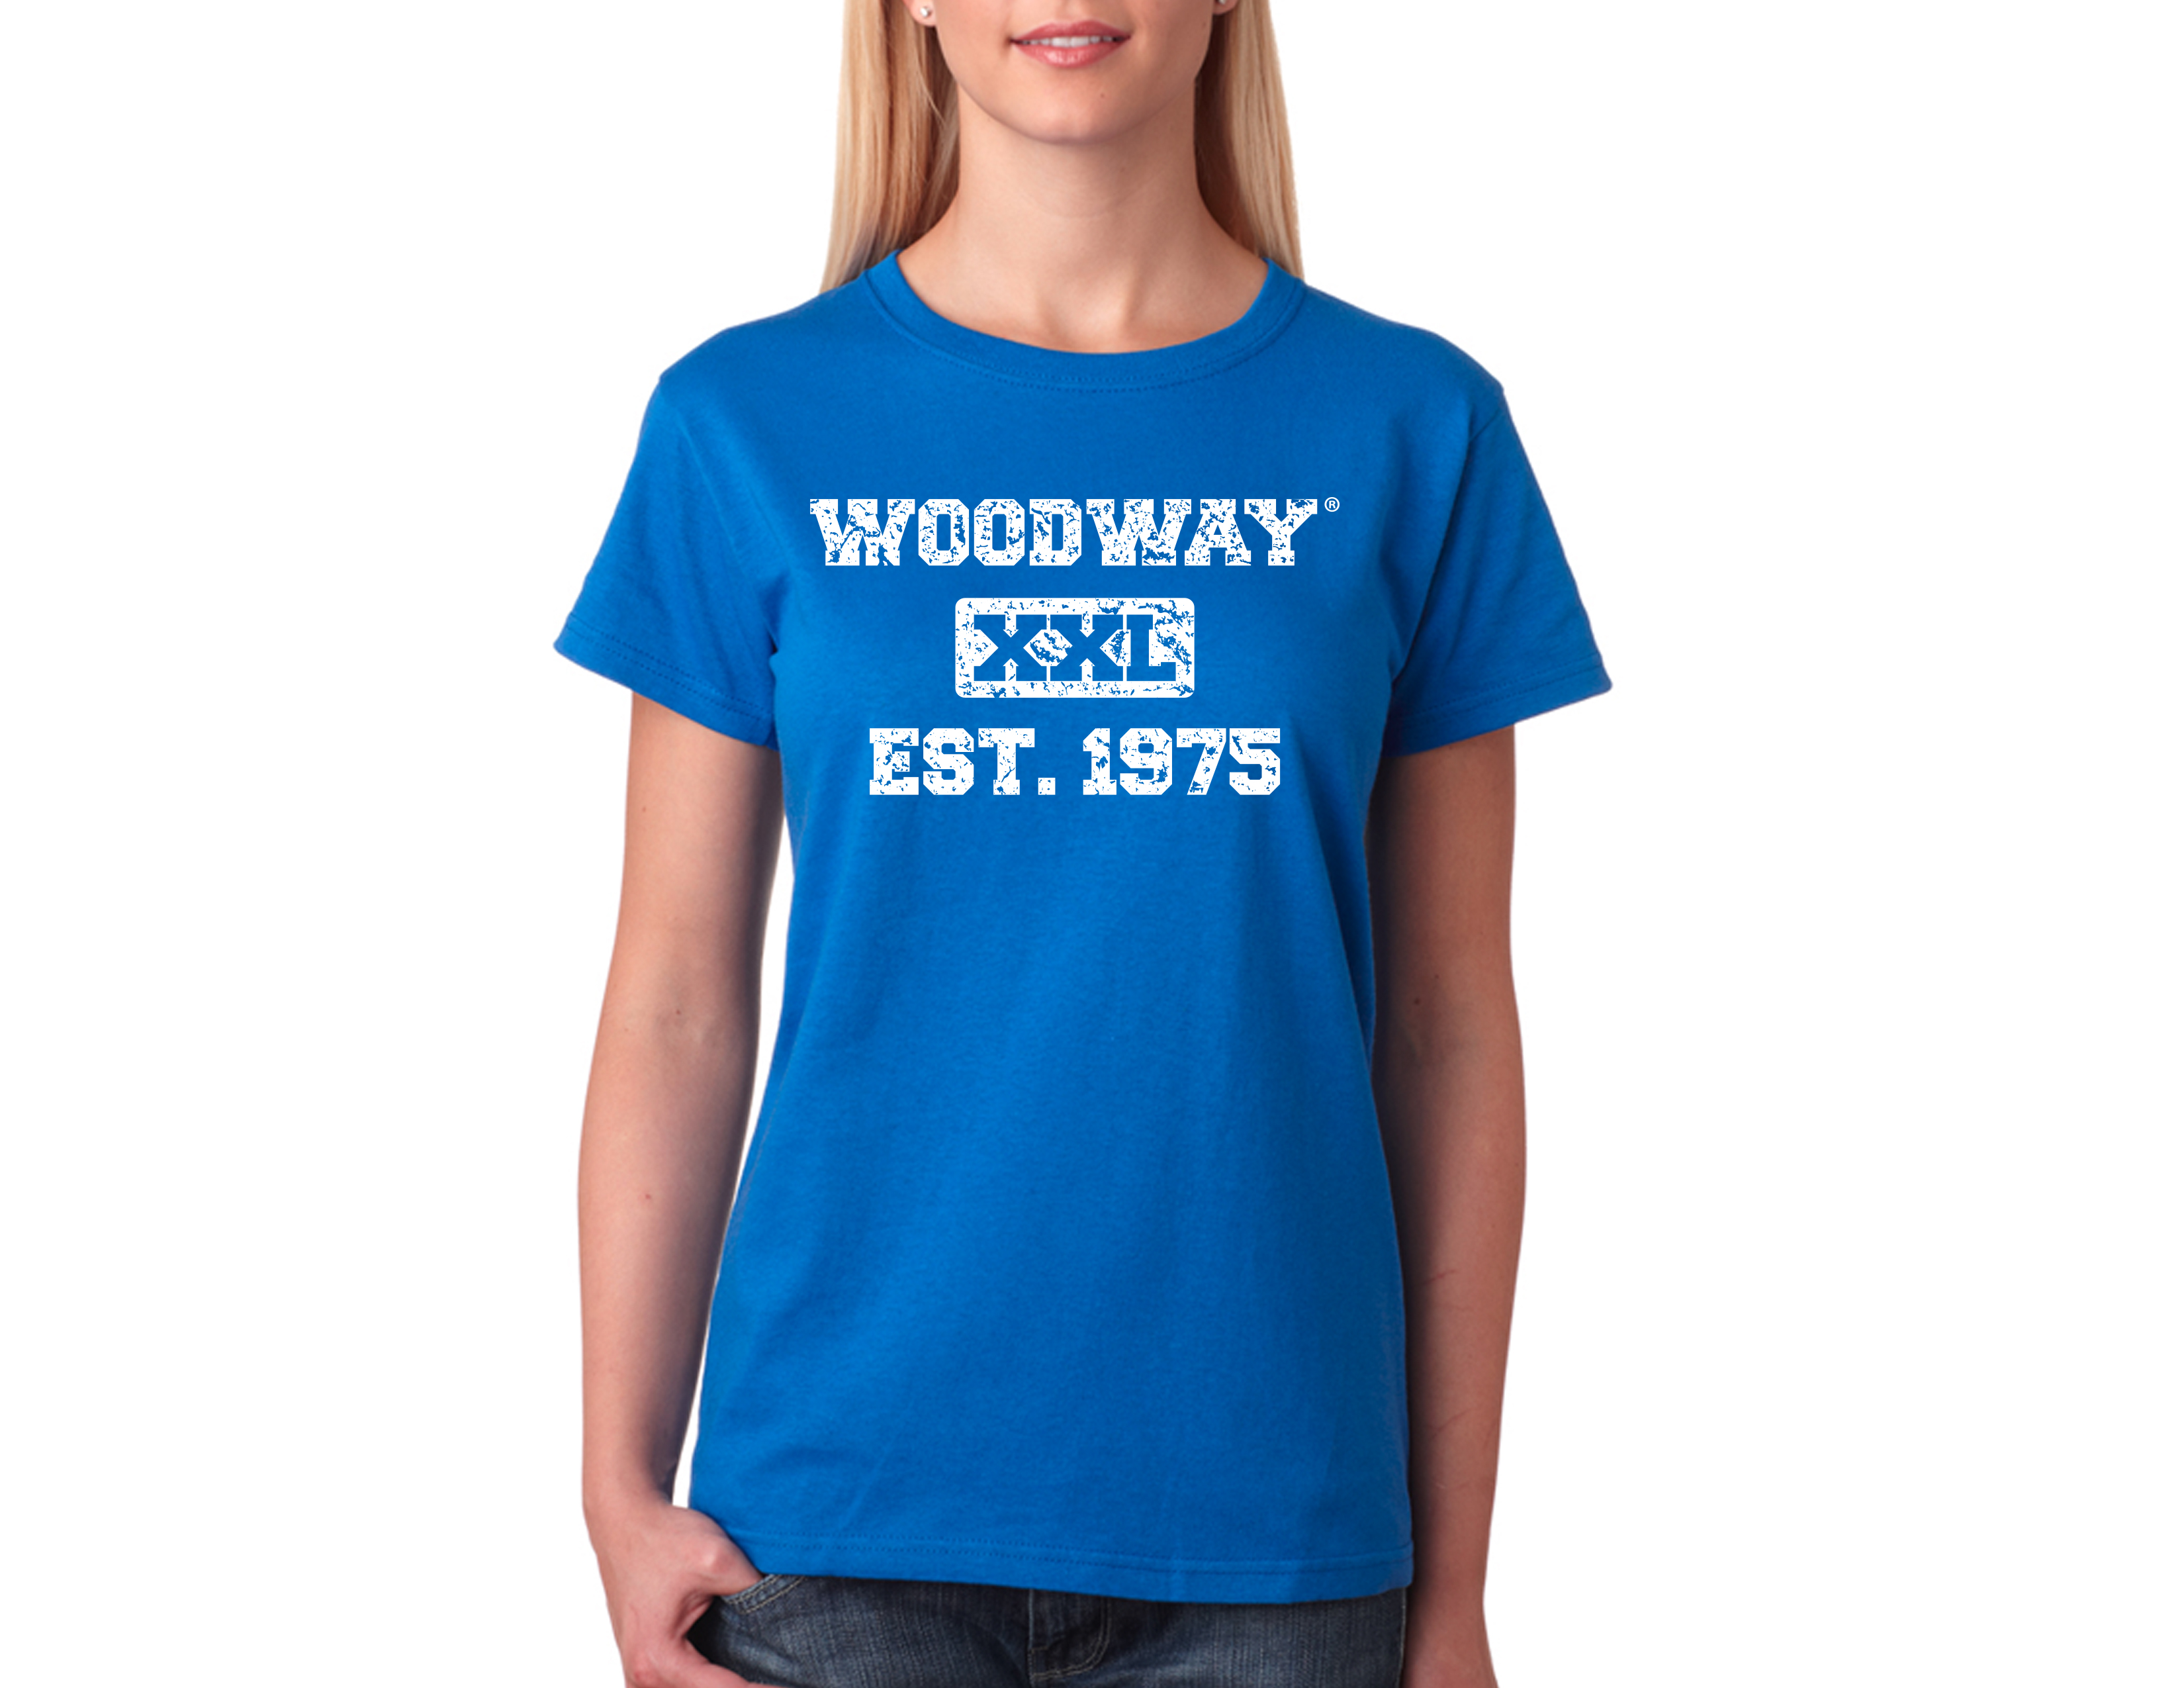 Woodway USA - T-shirt Designs